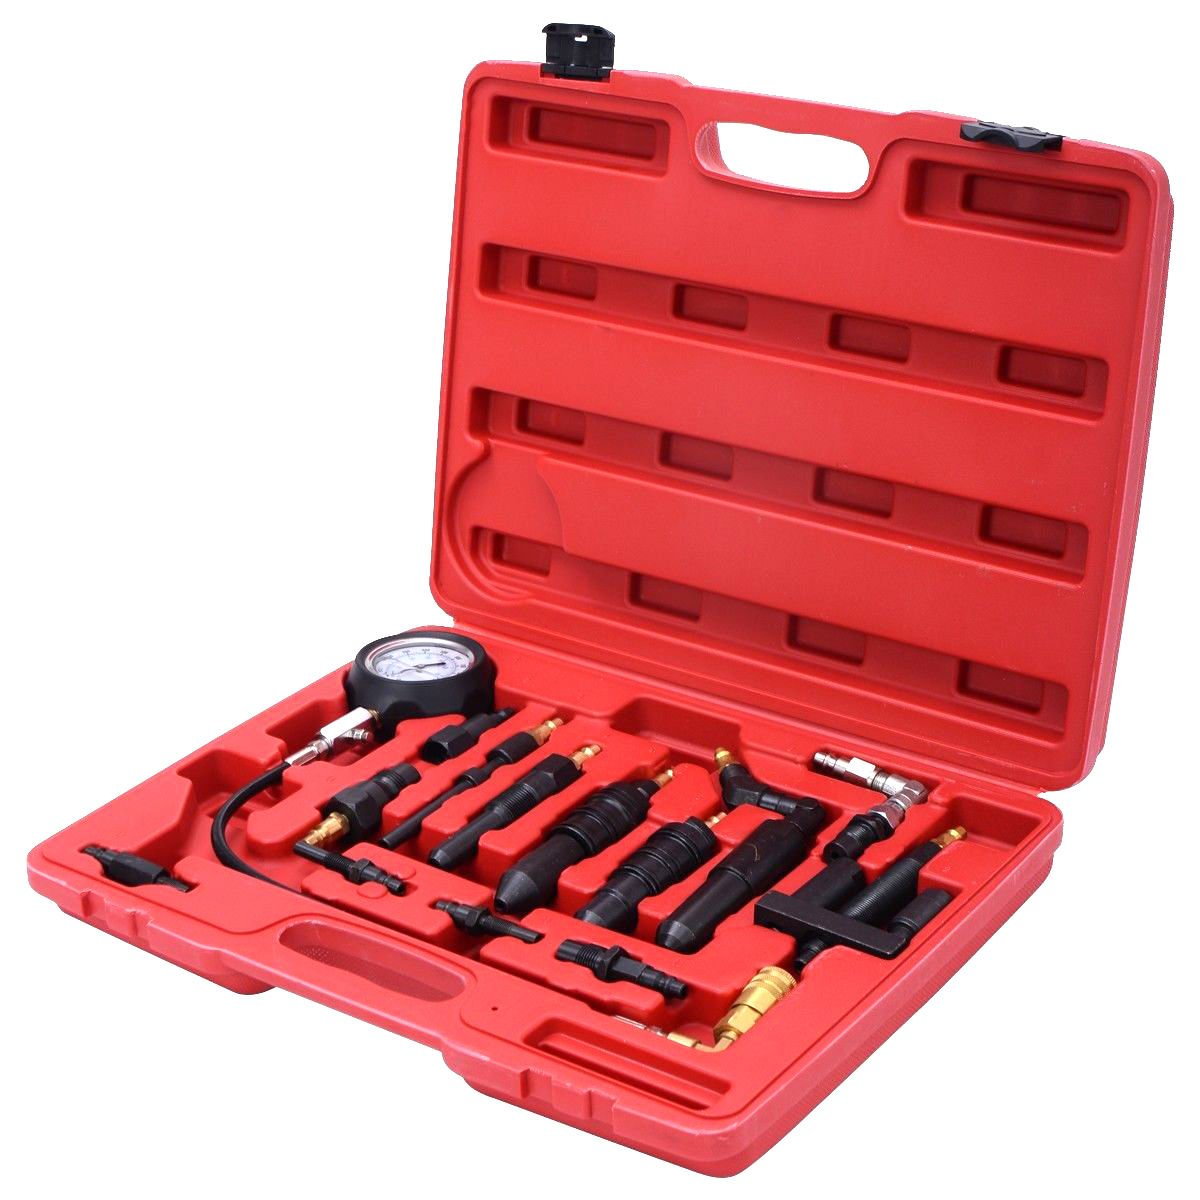 GHP Swivel End Quick Coupler Diesel Engine Compression Tester Set Kit with Case